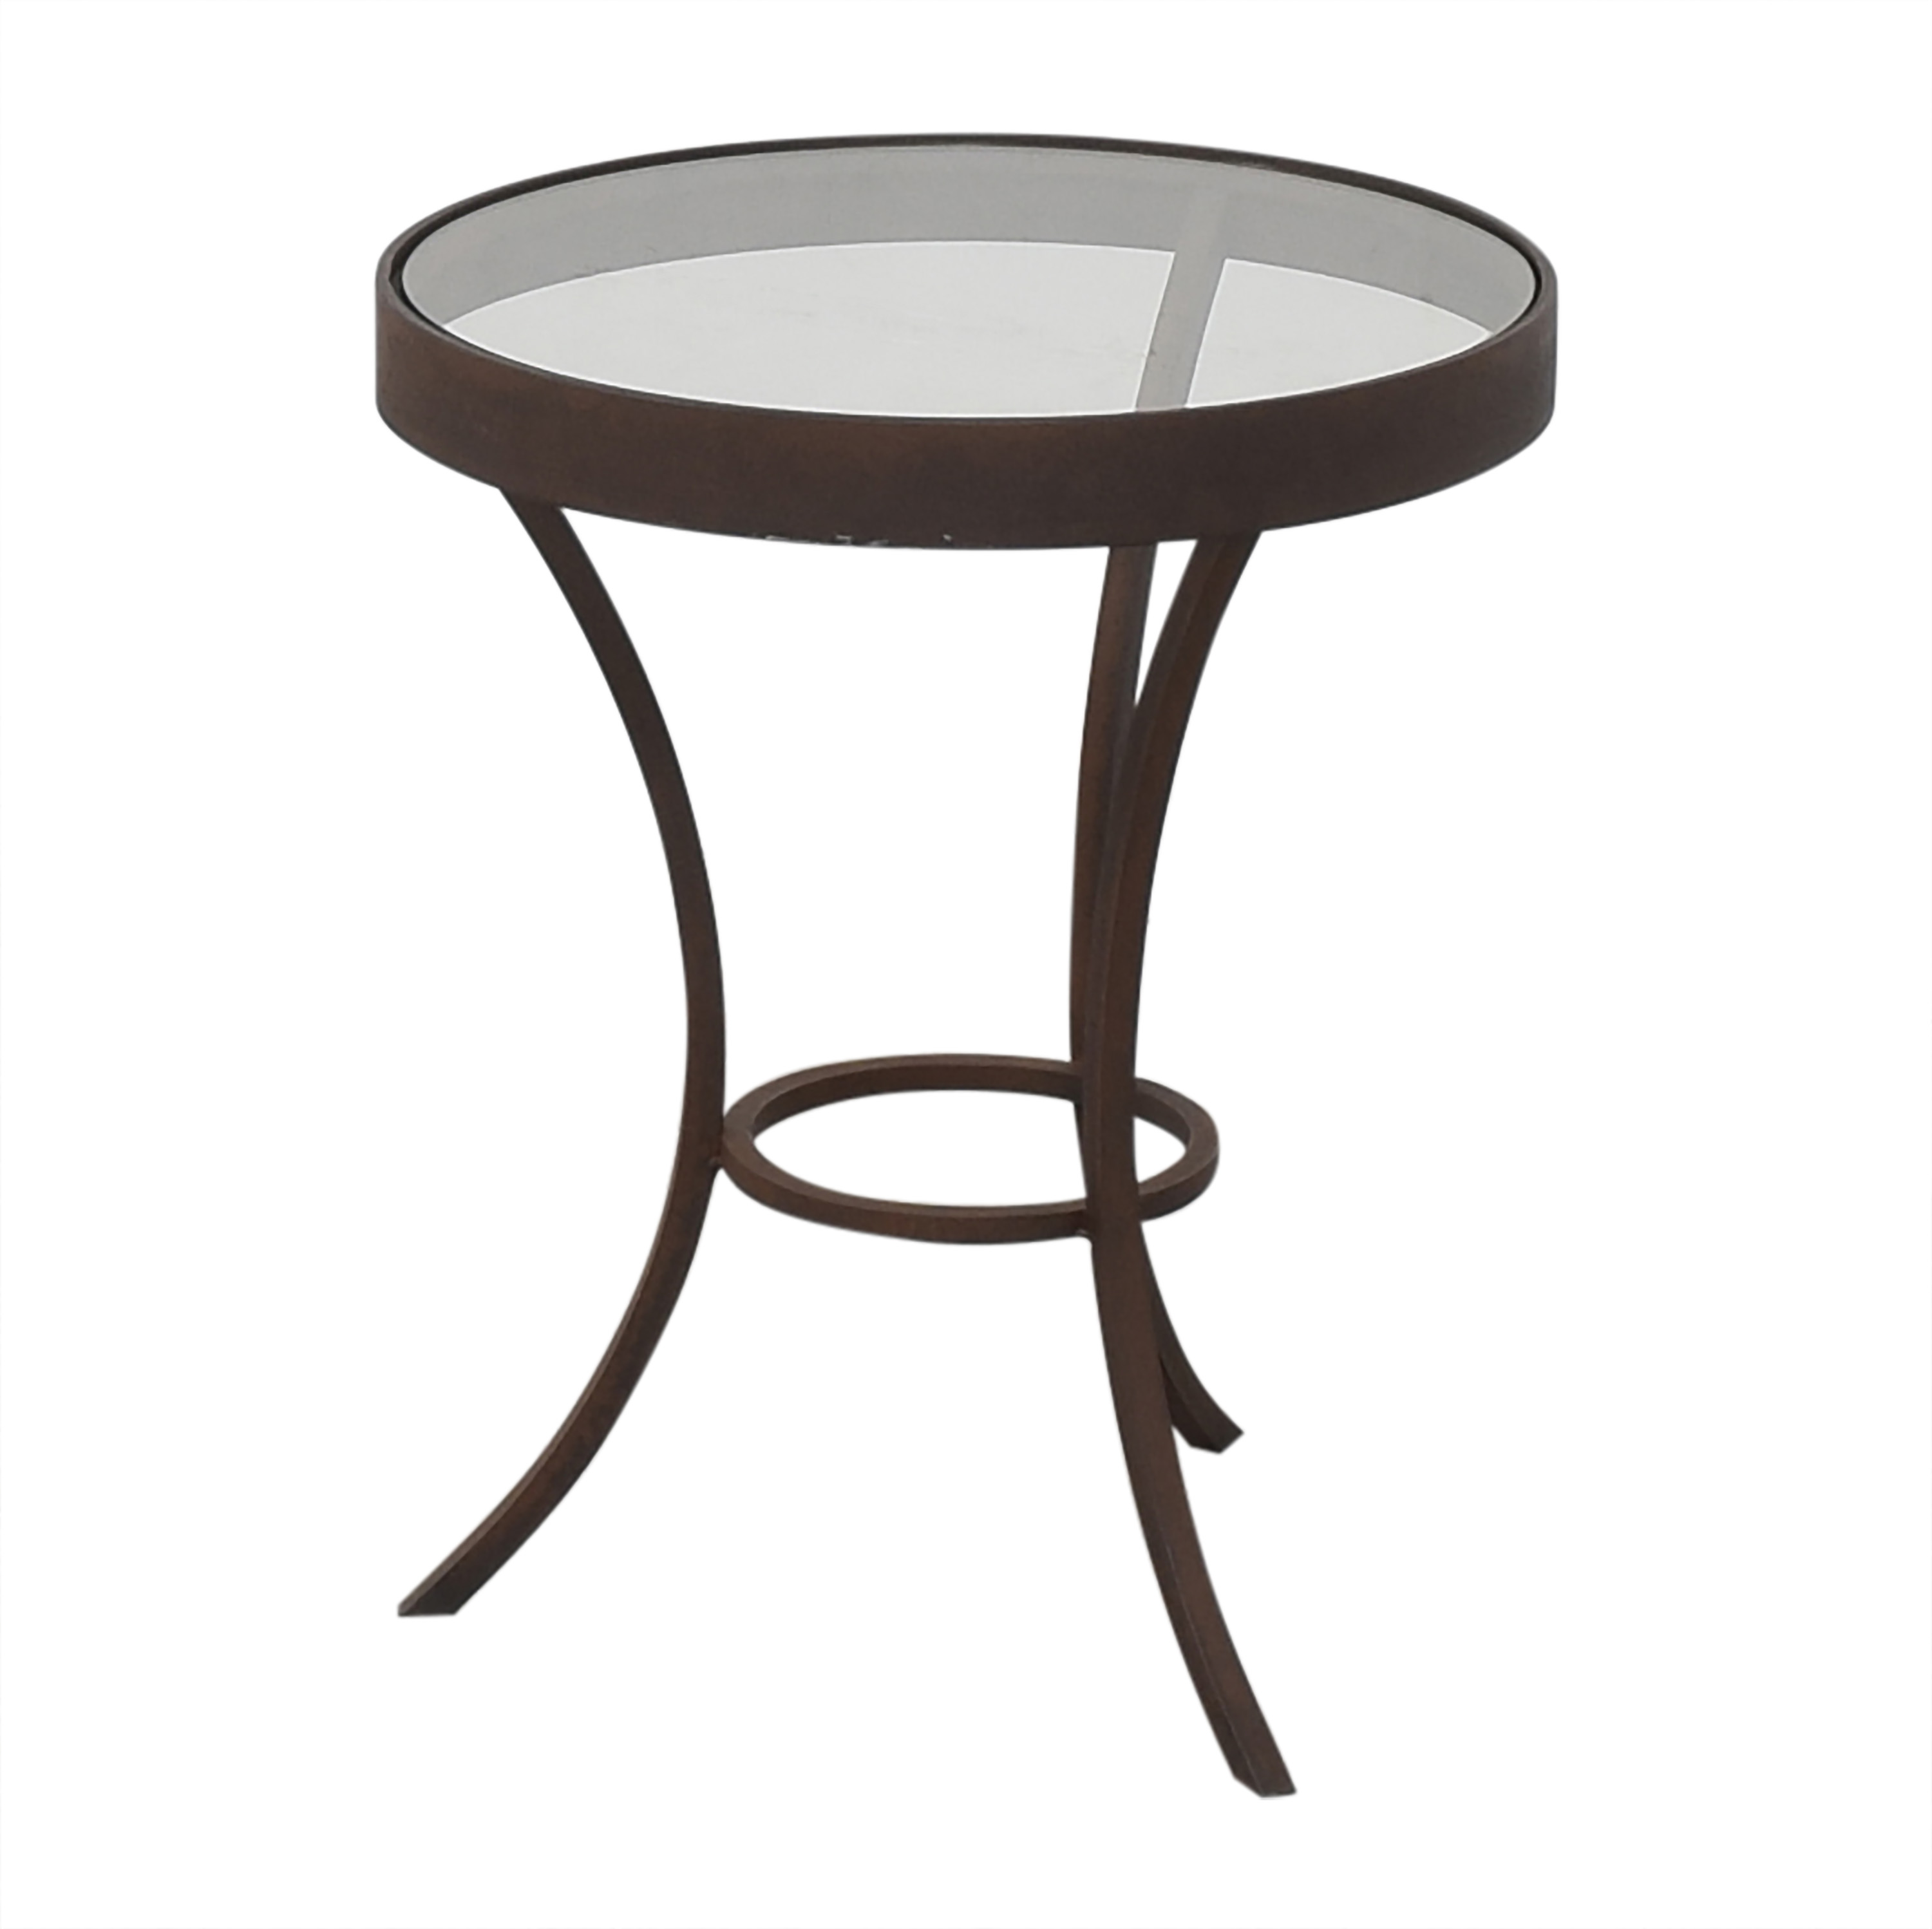 Crate & Barrel Crate & Barrel Round Side Table with Translucent Surface brown